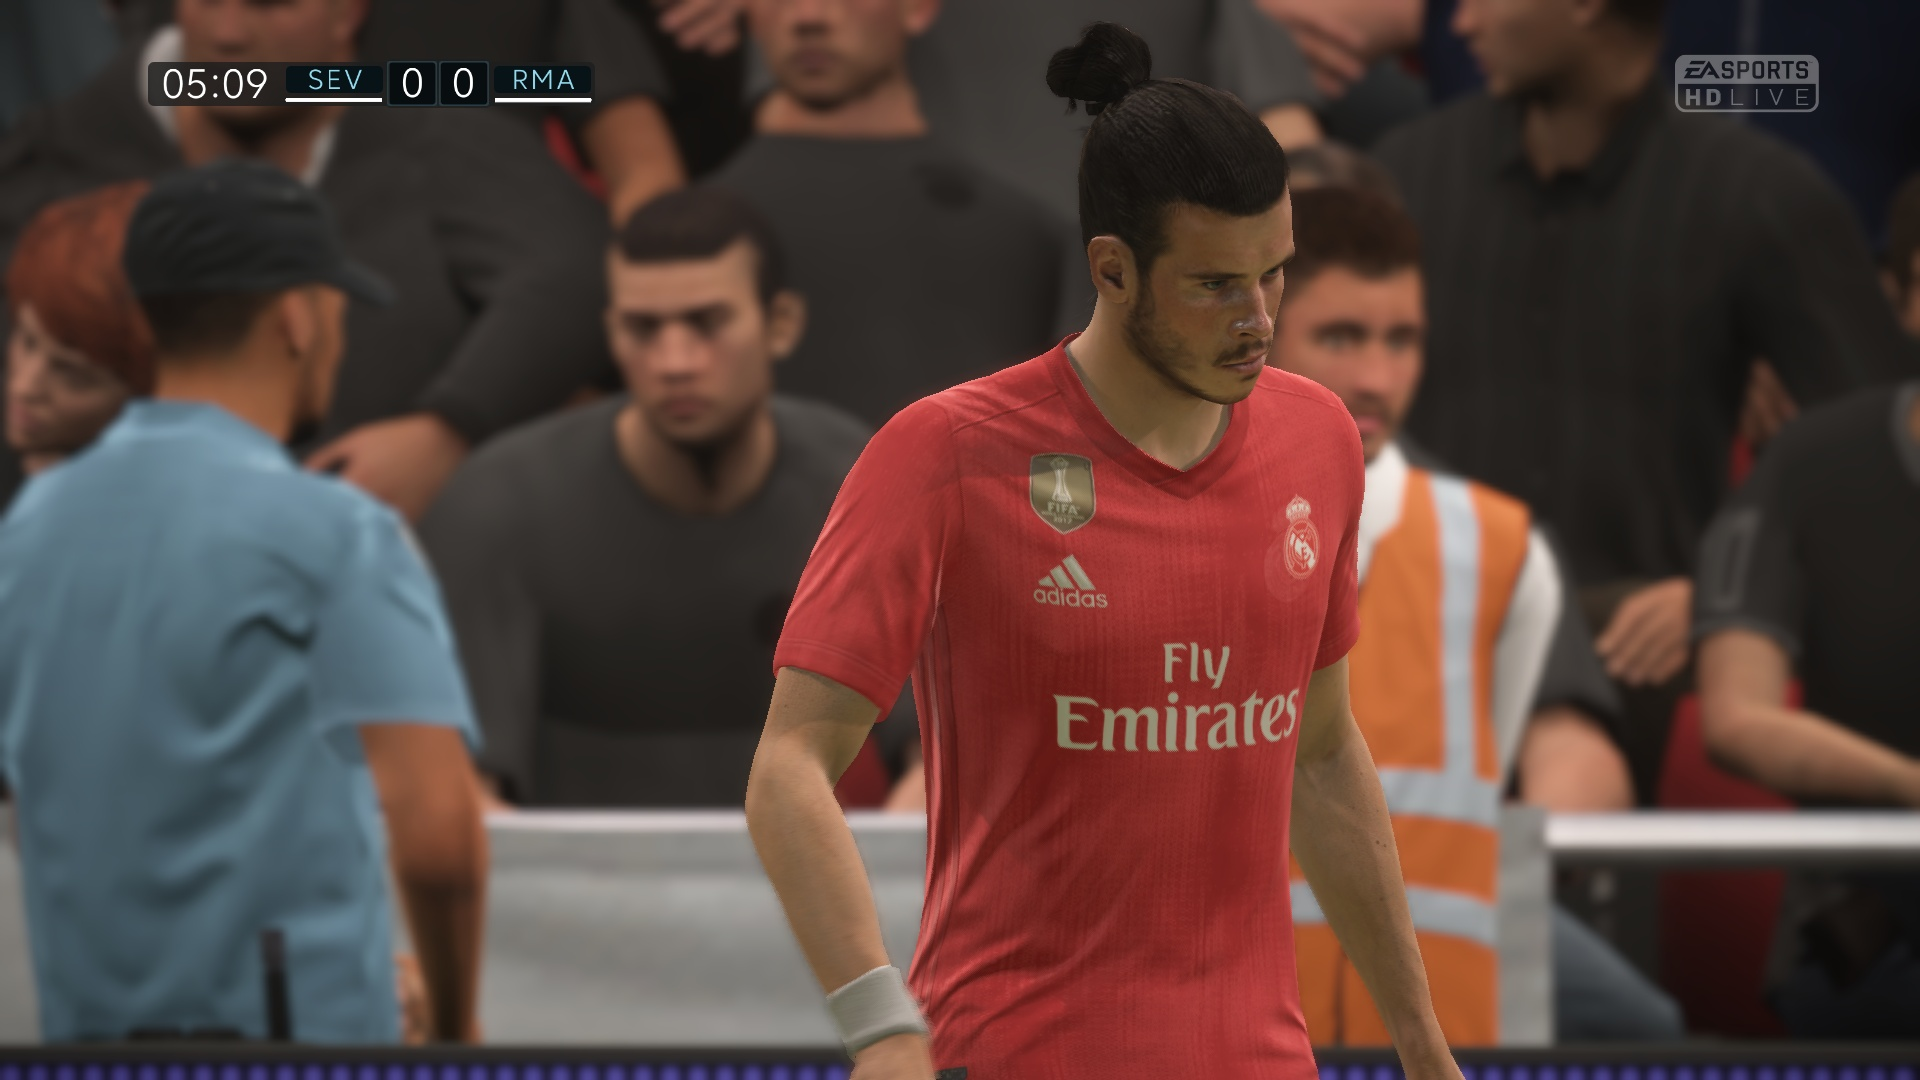 d3b52a84054 Complete kits converted from FIFA 19 to FIFA 18 for all Premier League  teams. This download also includes home